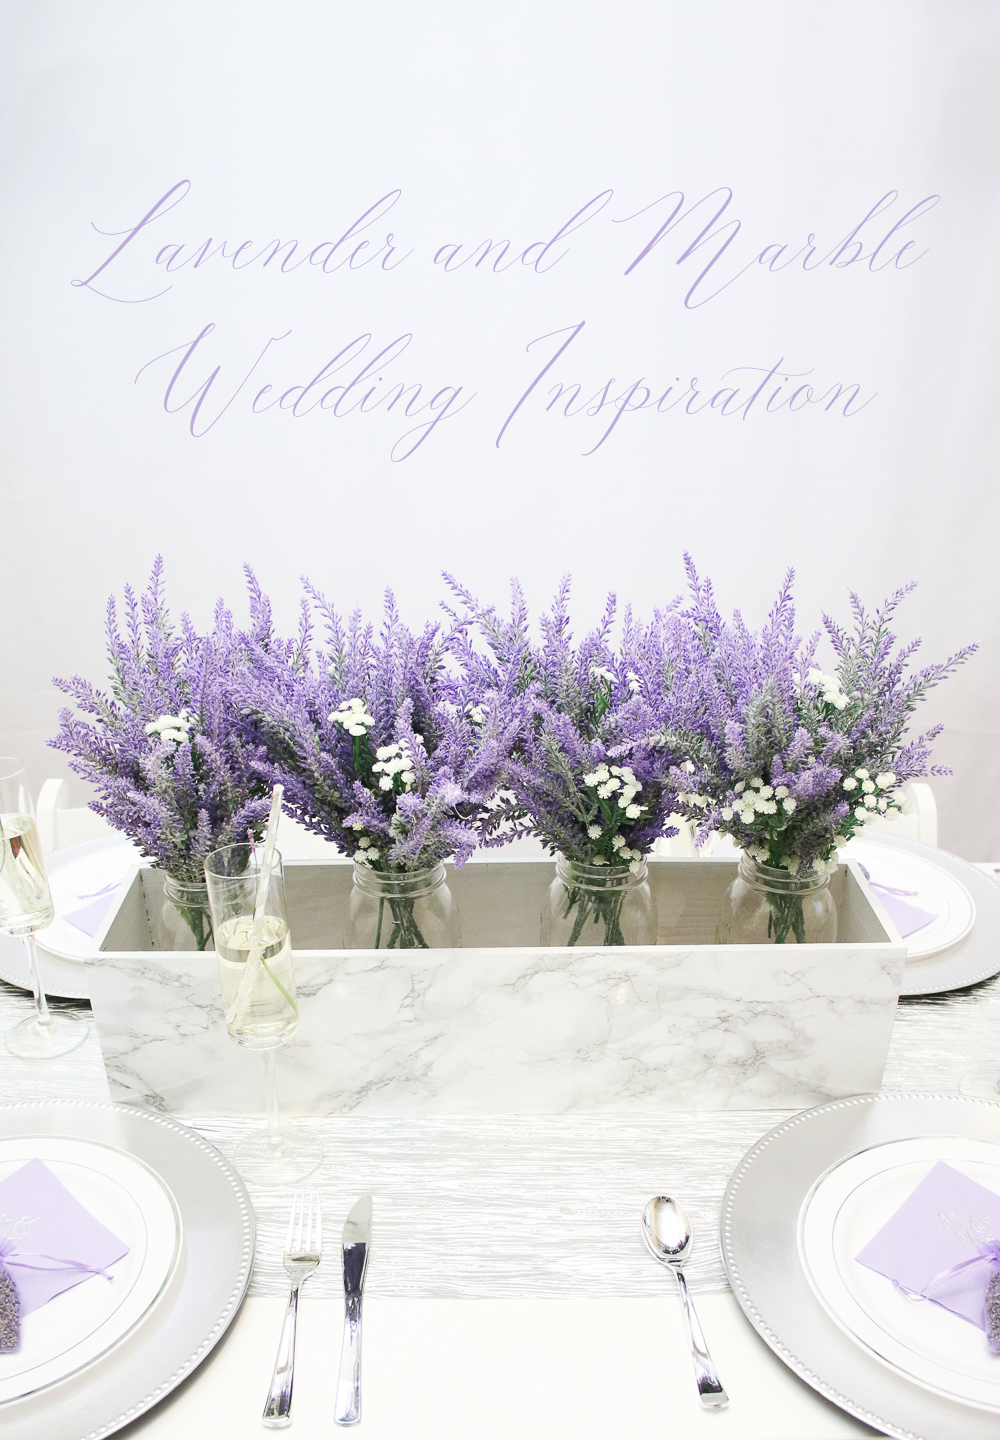 Marbe and Lavender Wedding Inspiration Inspiration